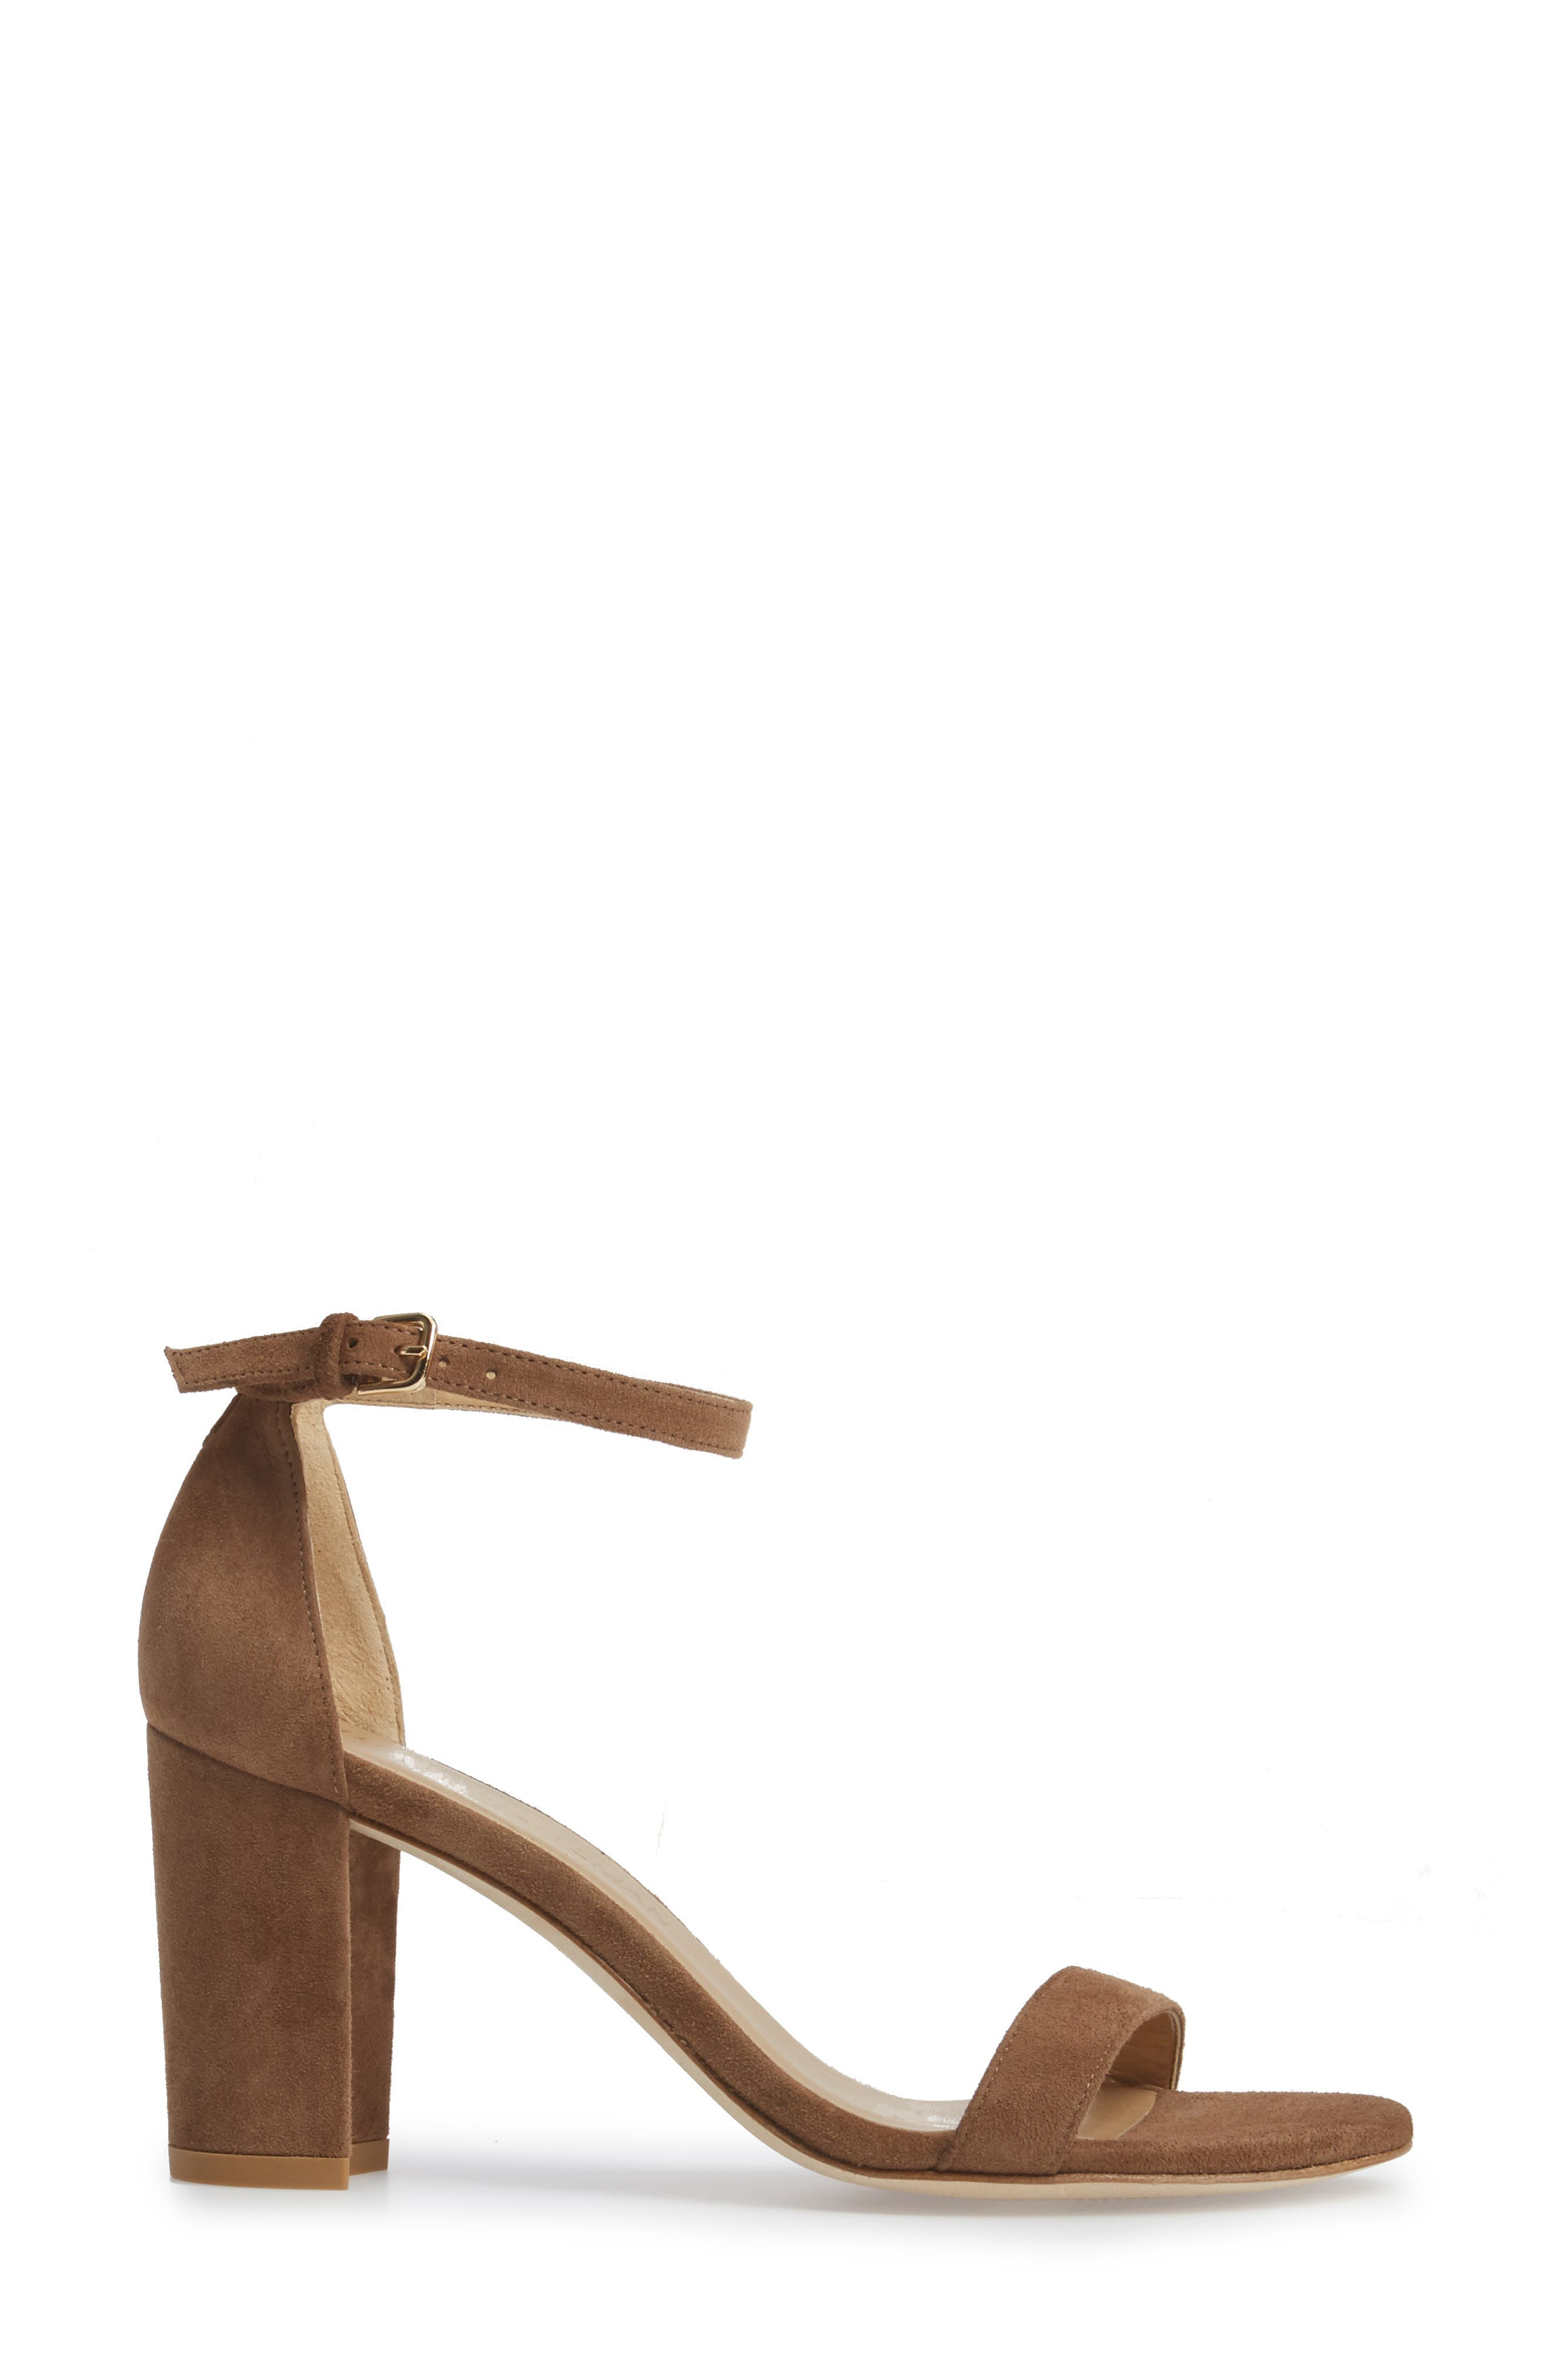 NearlyNude Ankle Strap Sandal,                             Alternate thumbnail 70, color,